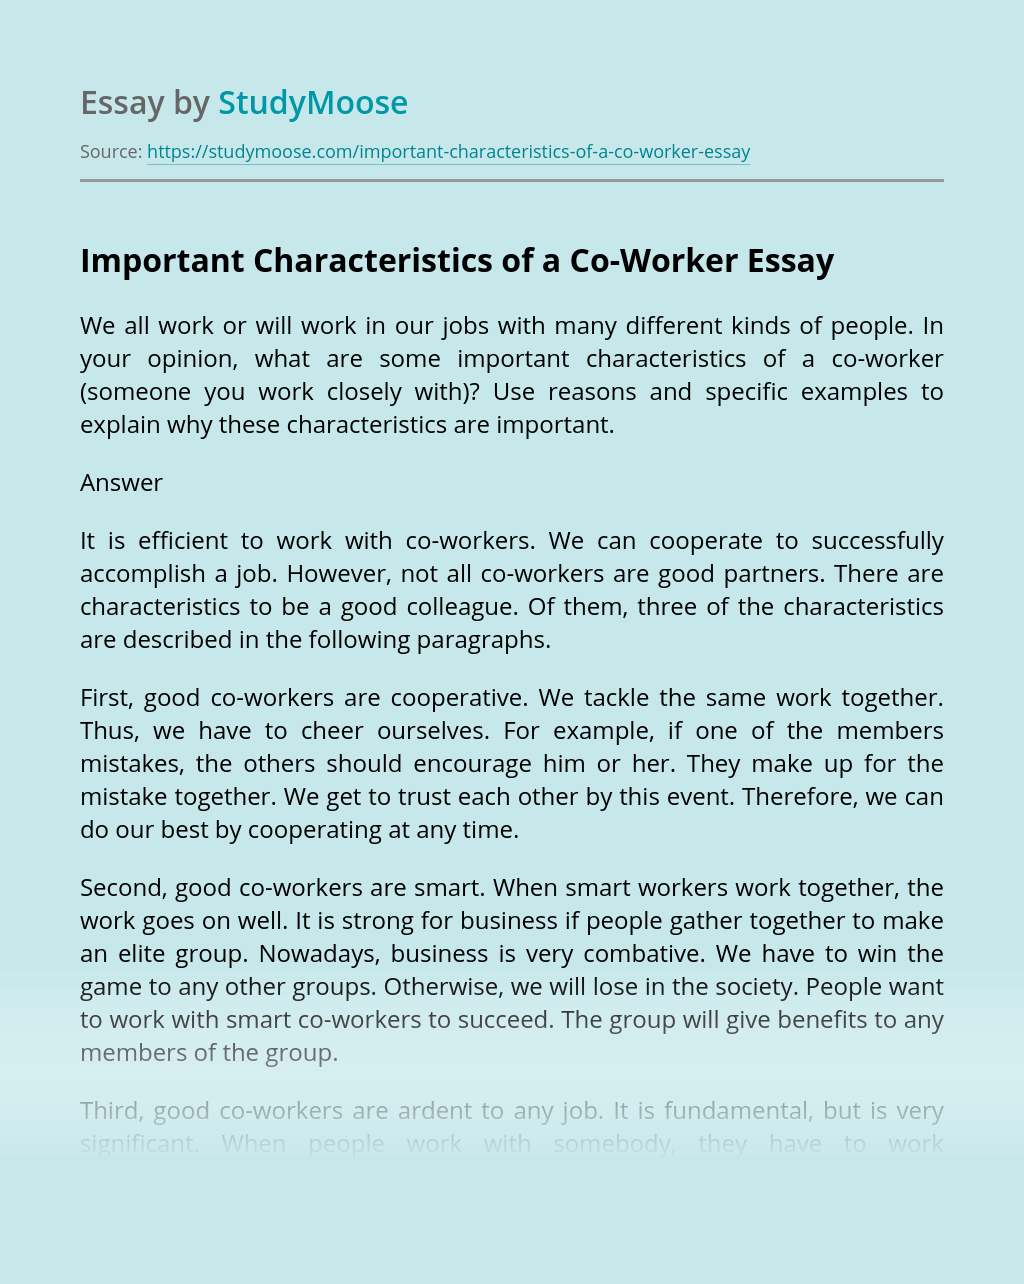 Important Characteristics of a Co-Worker